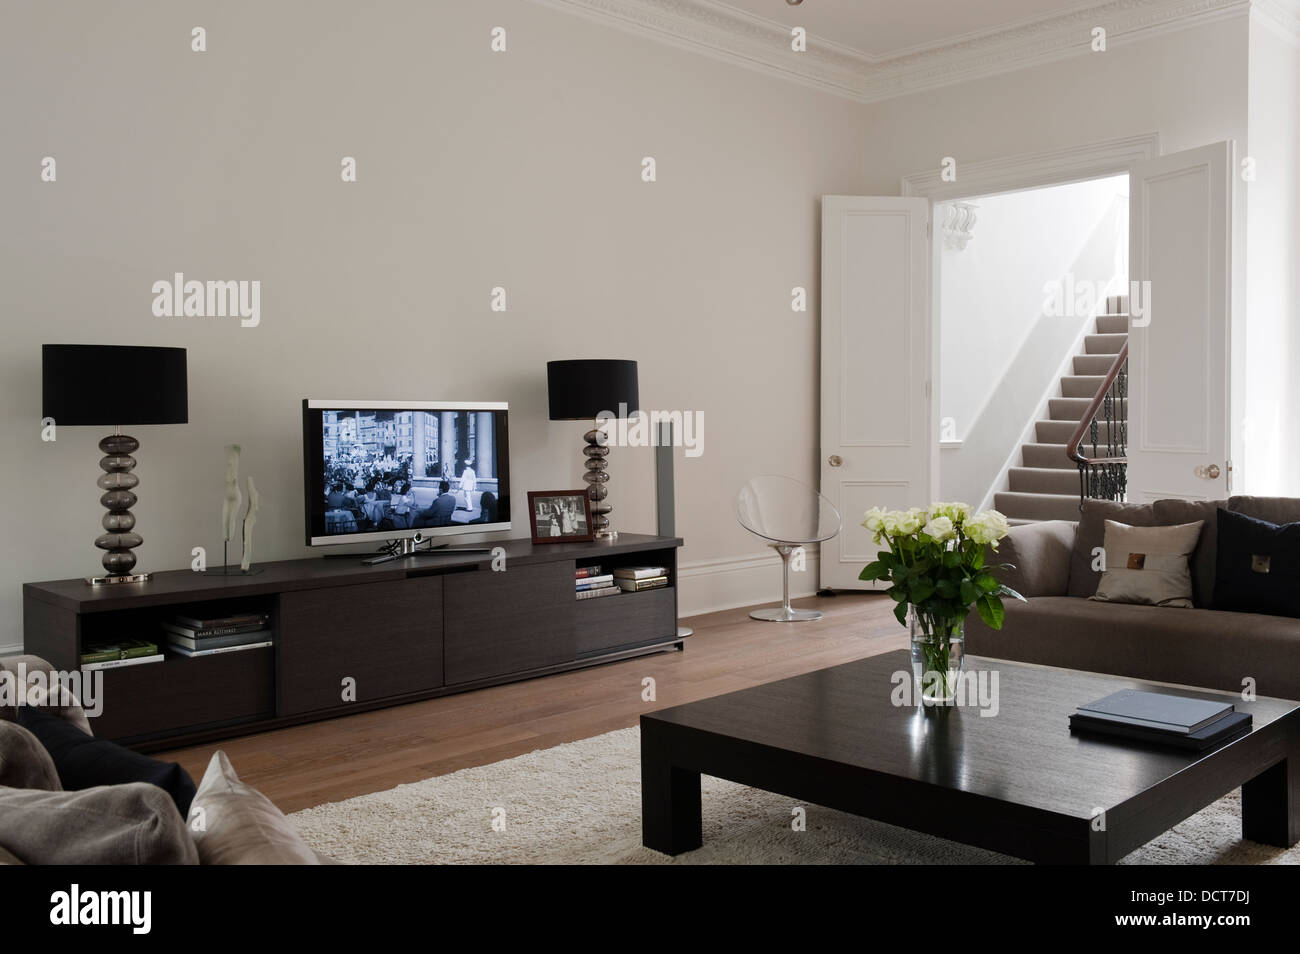 Delightful Flat Screen And Matching Lamps On Sideboard In Living Room Of Kensington  Home Part 5